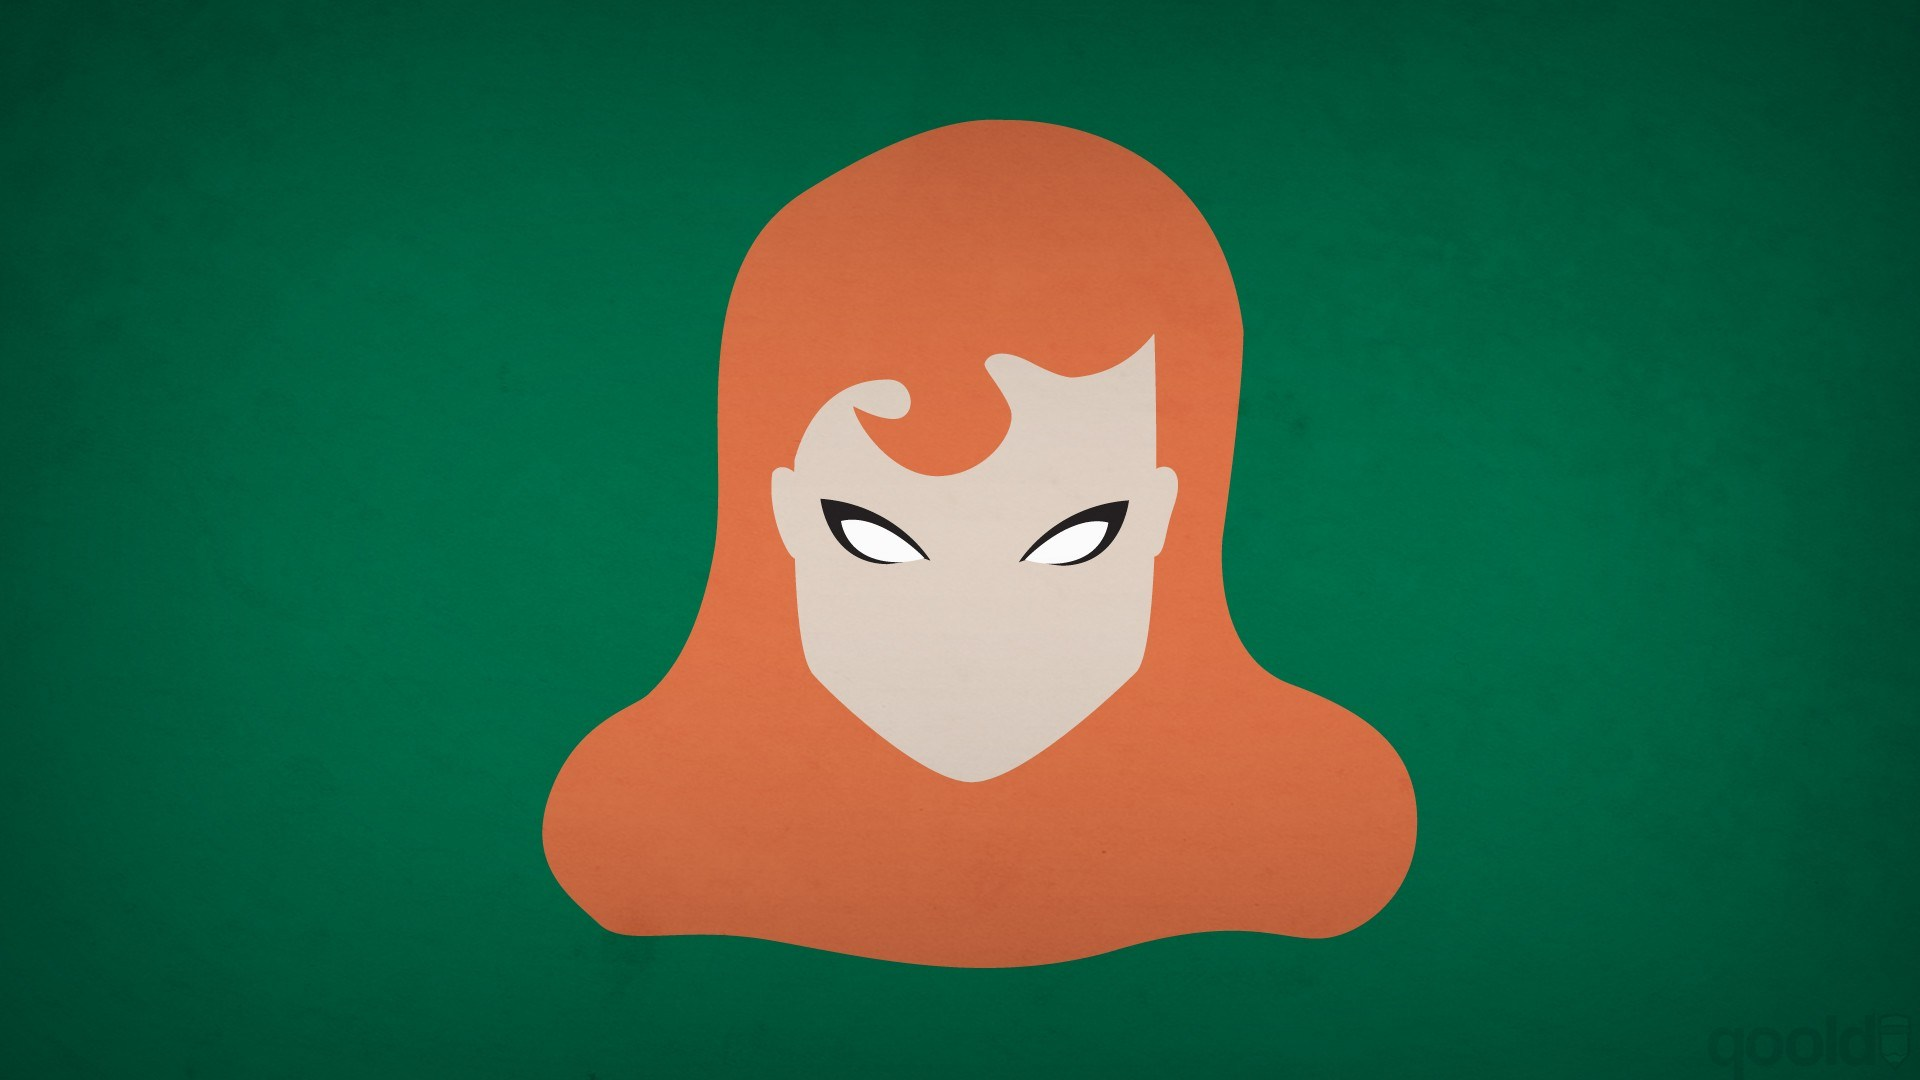 Dc Comics Poison Ivy Blo0p Minimalism Wallpapers Hd Poison Ivy